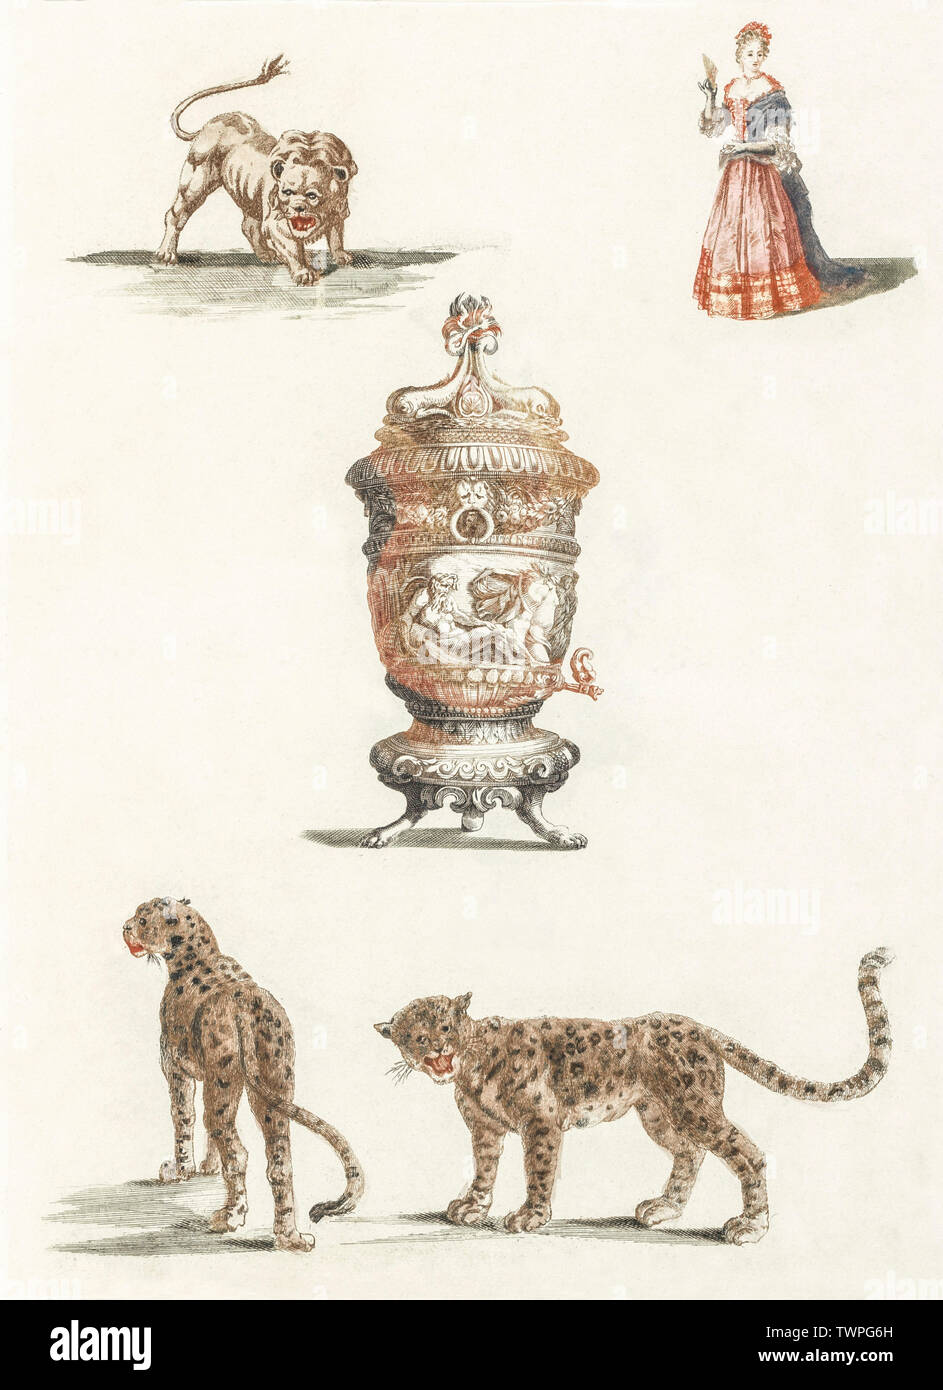 A lion, a standing woman, a fountain and two leopards by Johan Teyler (1648-1709). Original from the Rijks Museum. Digitally enhanced by rawpixel. - Stock Image